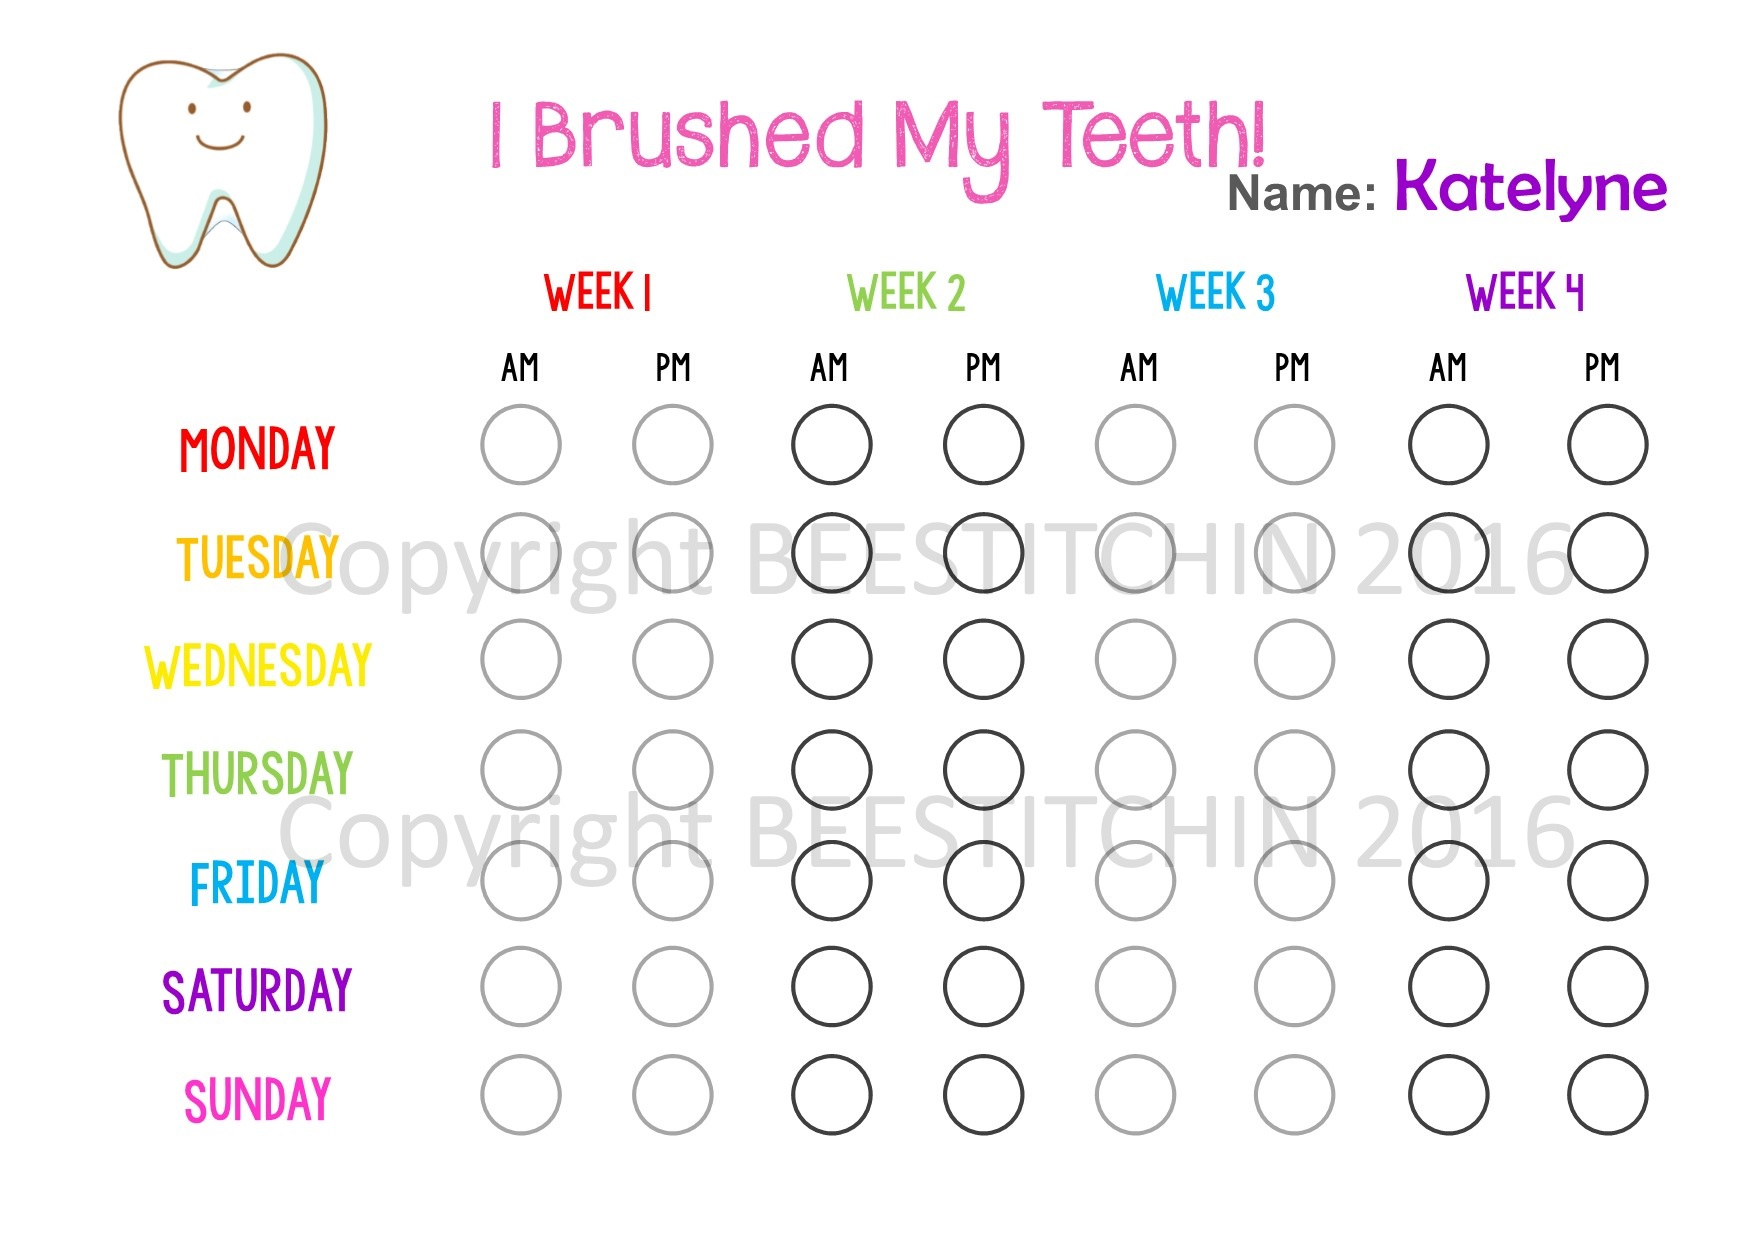 I brushed my teeth tooth brushing chart 4 colours printable